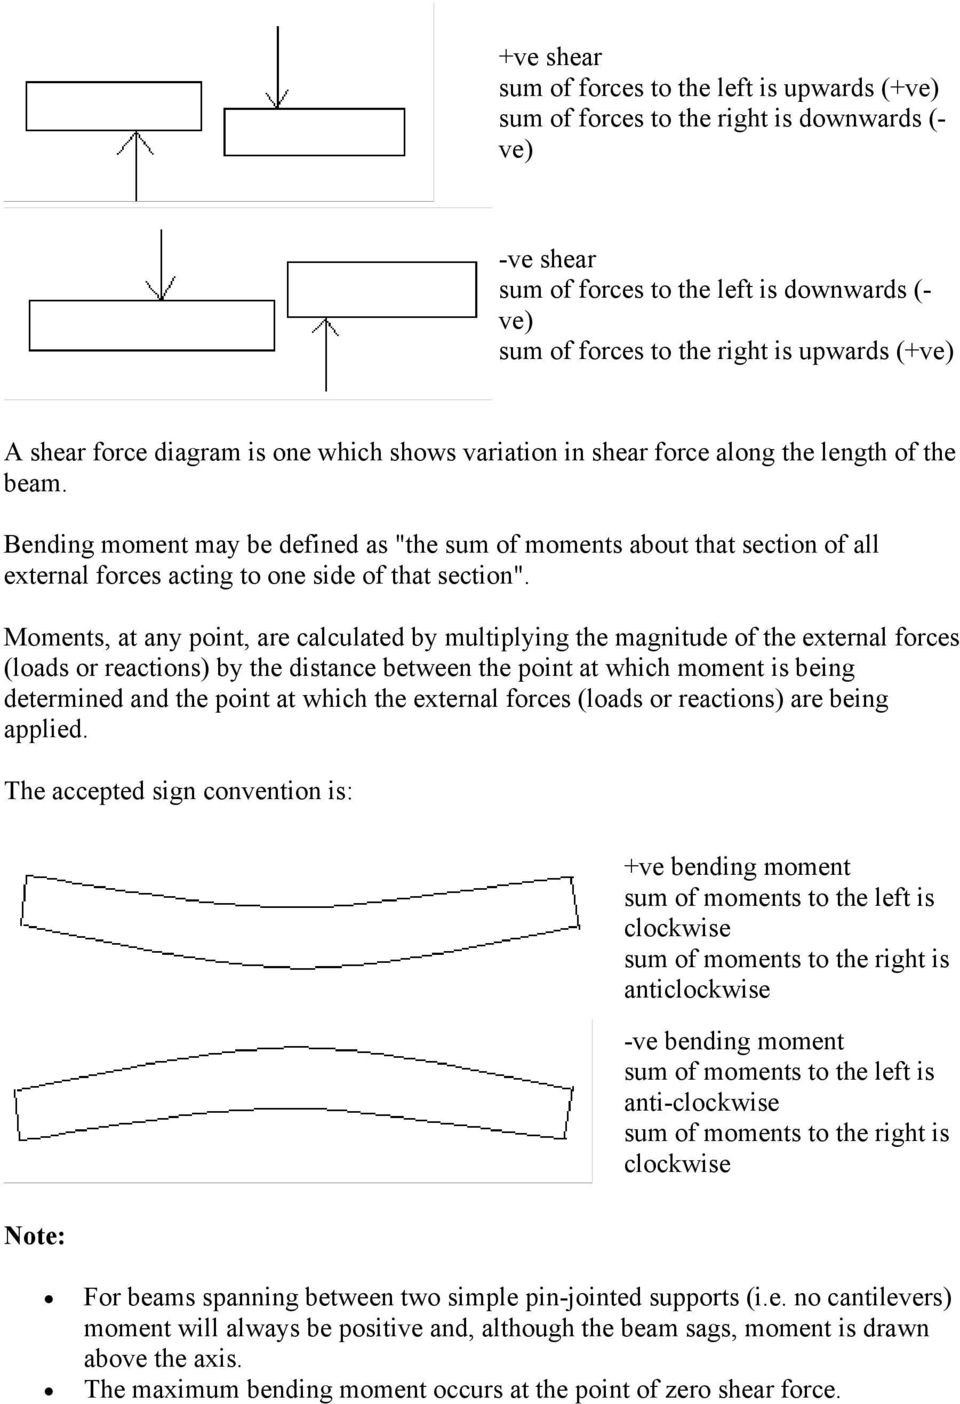 Recitation 5 Understanding Shear Force And Bending Moment Diagrams To Draw The Load Diagram Upward Concentrated At A Is 10 Kn May Be Defined As Sum Of Moments About That Section All